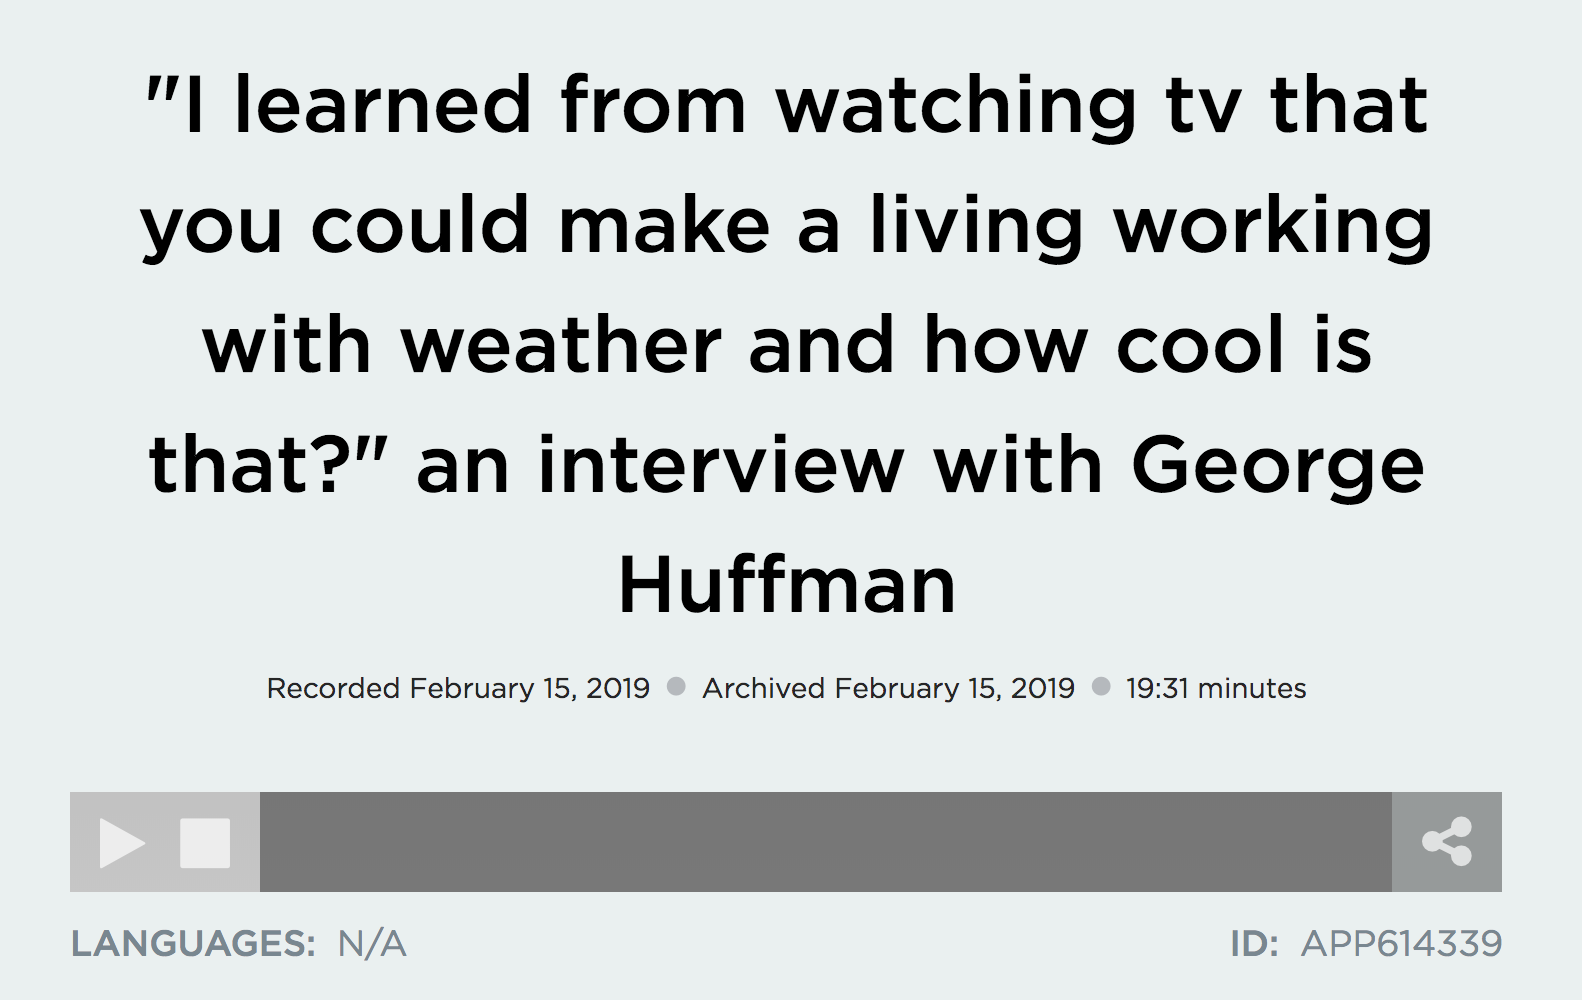 interview with George Huffman